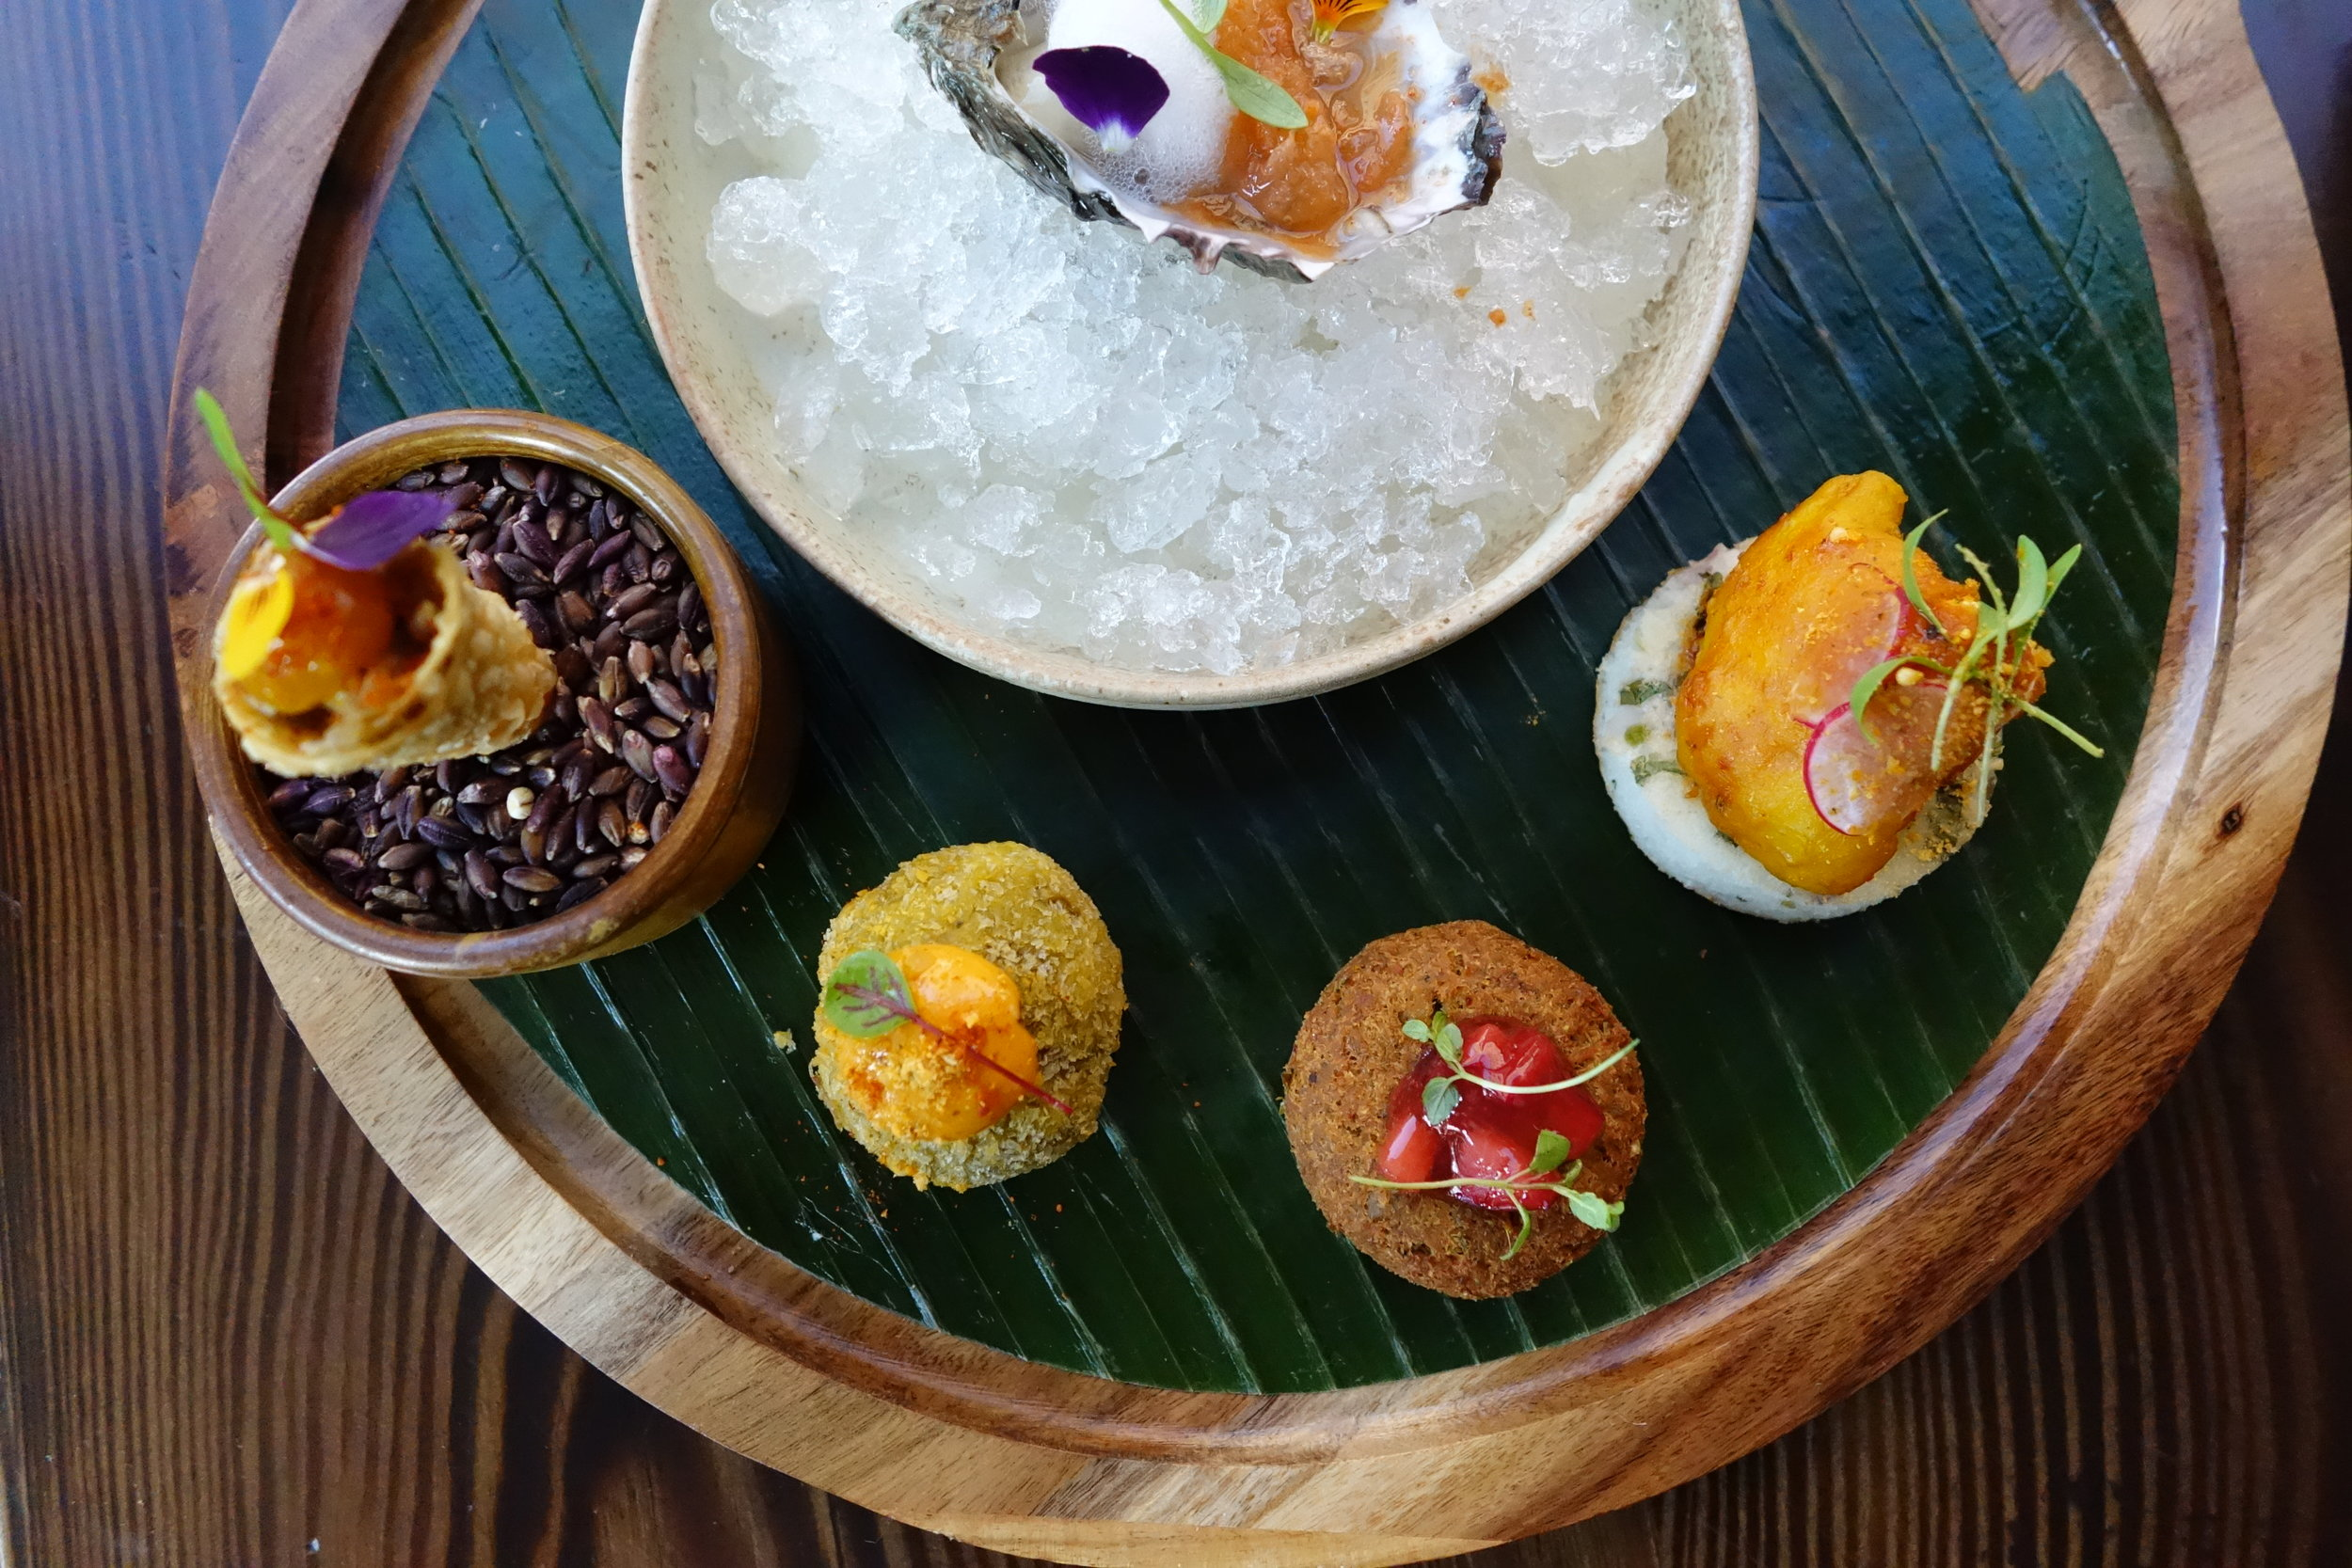 Appetizers by Rooh SF's Executive Chef Sanjay Sarkar.  Madras Duck Cornetto with Apricot Jam, Cauliflower 65 with Mini Onion Uttapam, Oyster with Hansen's Key Lime Twist and Guava Granita, Chicken Shami Kebab with Plum Chutney, Pulled Beef Madras Croquettes.